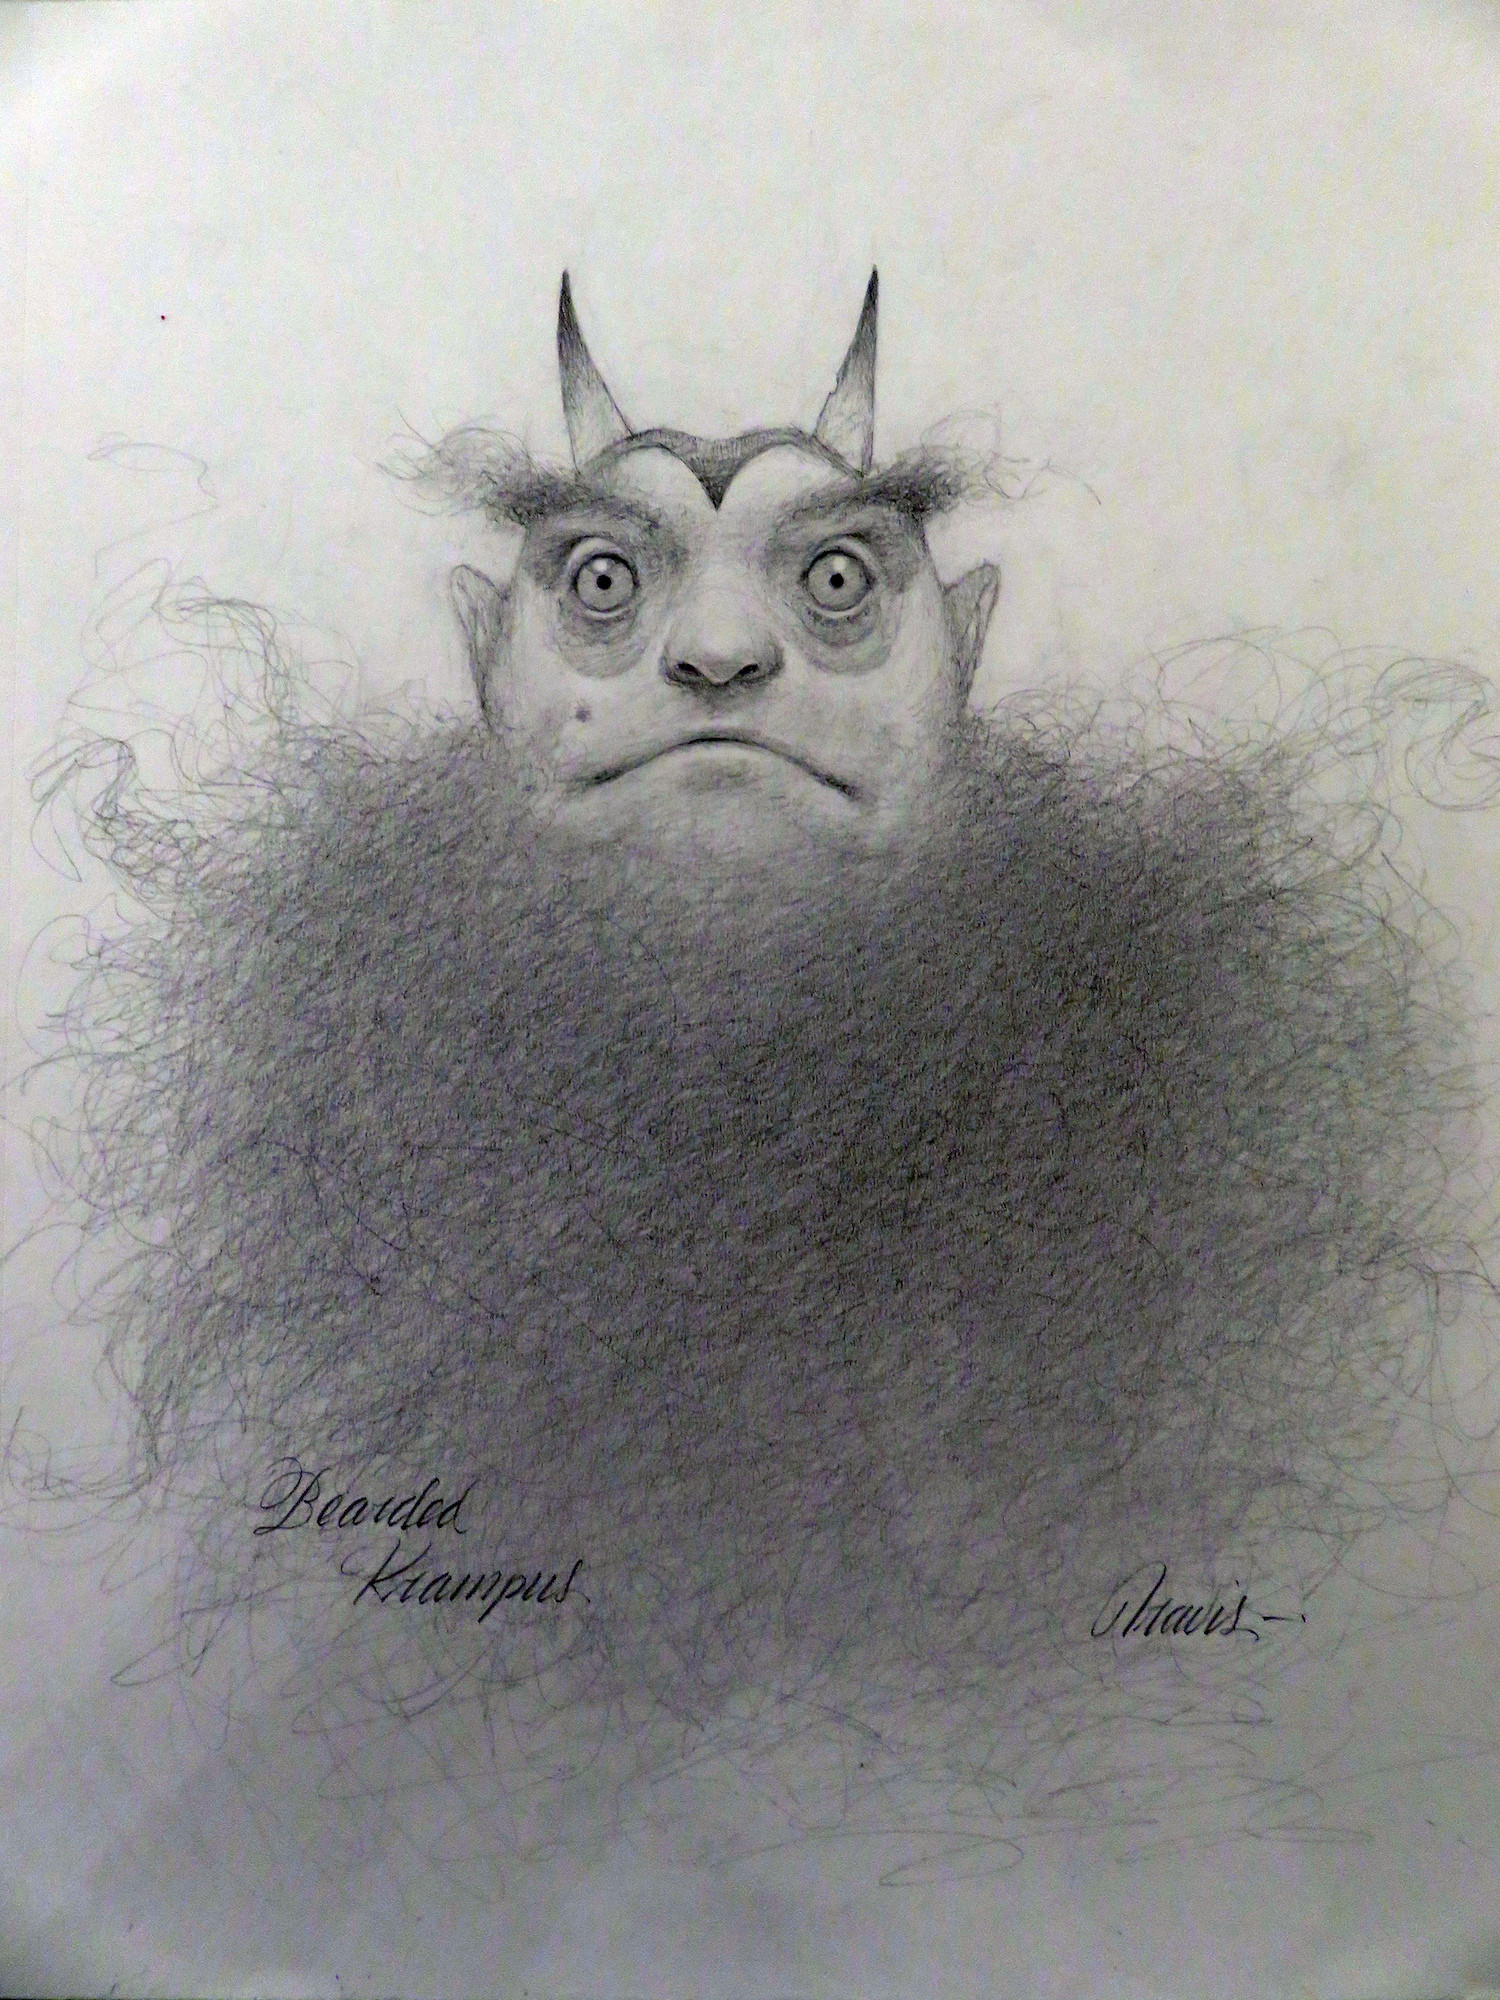 Bearded Krampus